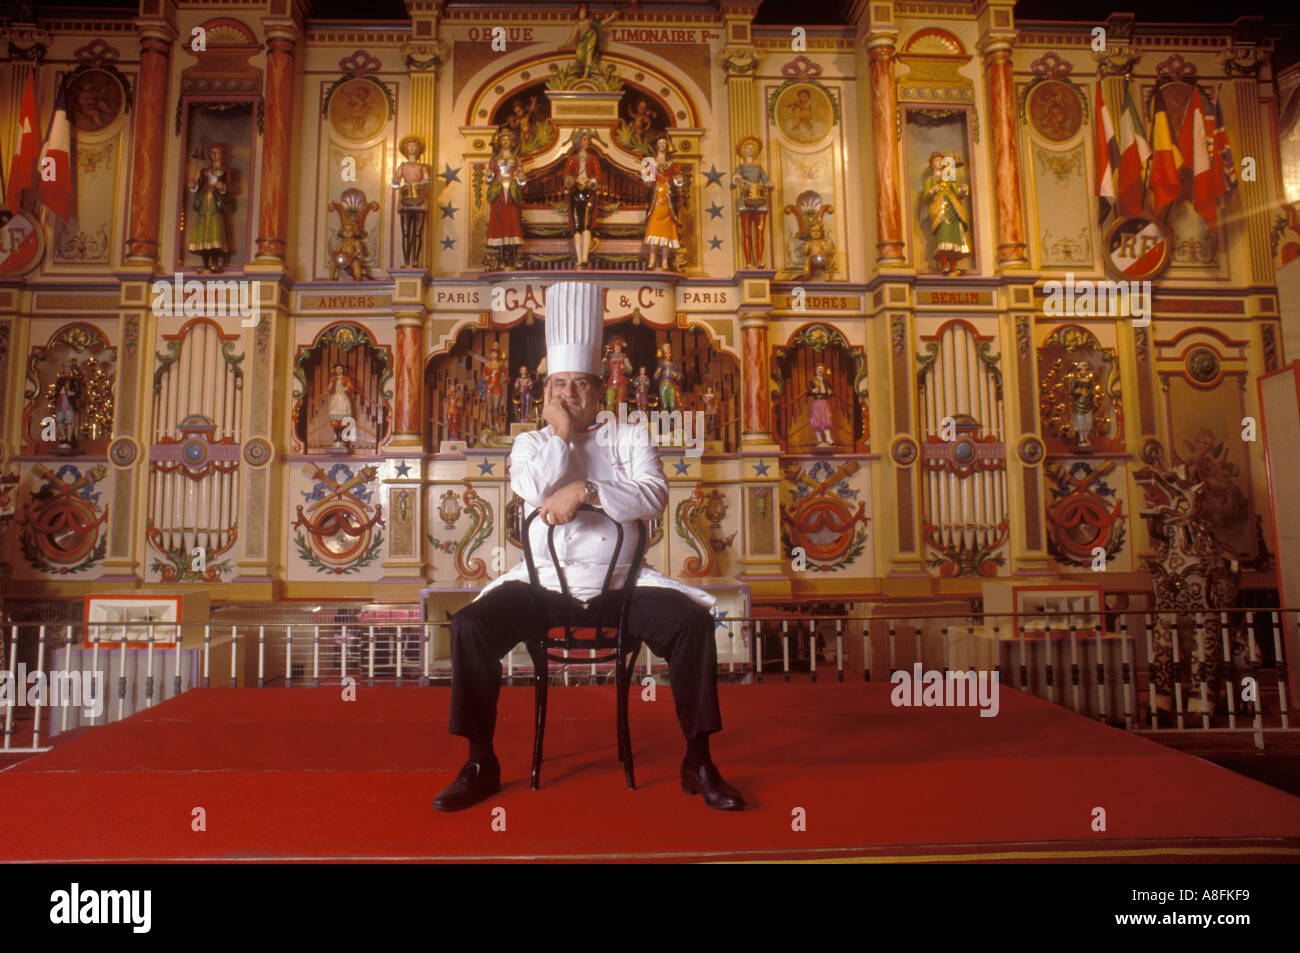 paul bocuse in his restaurant lyon france homer sykes stock photo royalty free image 3946488. Black Bedroom Furniture Sets. Home Design Ideas